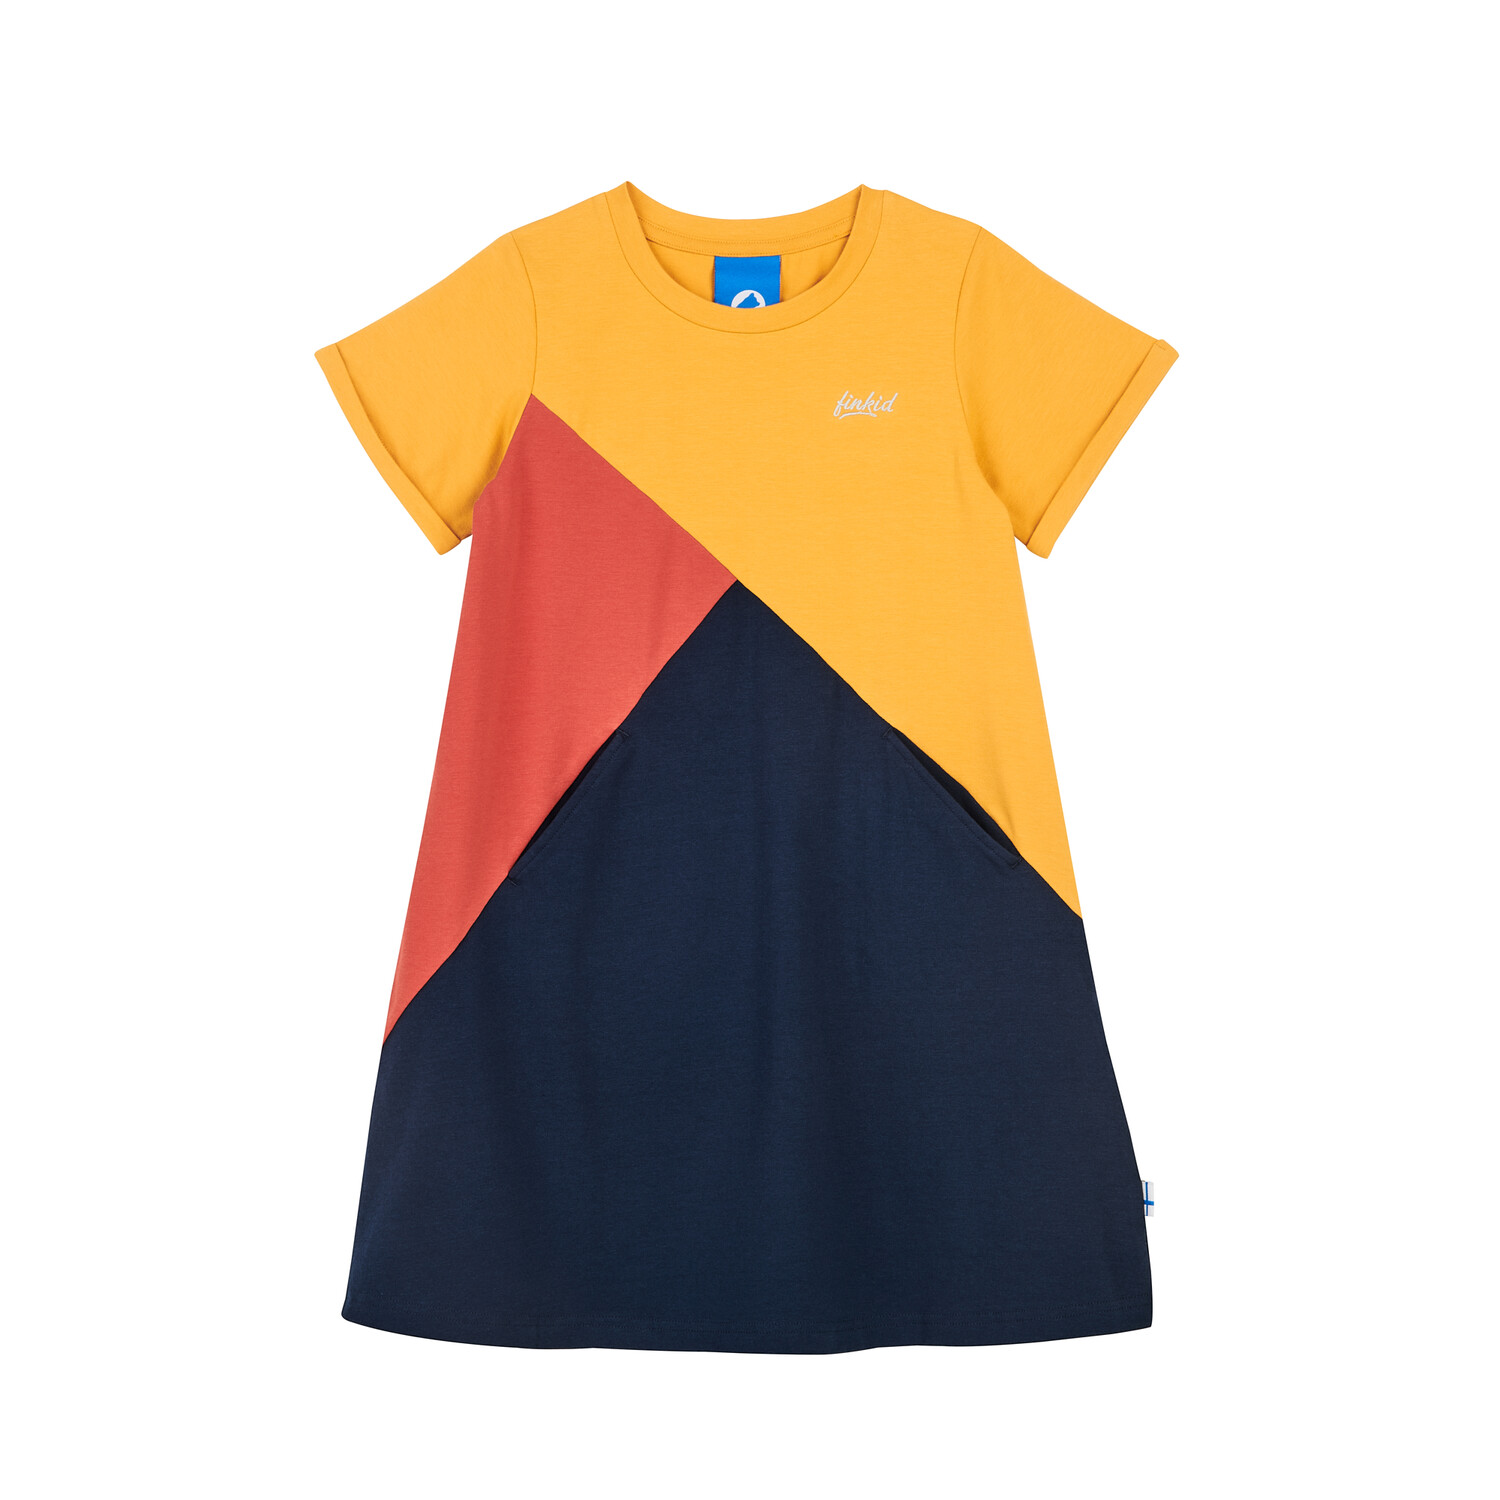 MERIKORTTI golden yellow/chil dress  110/120 Finkid®